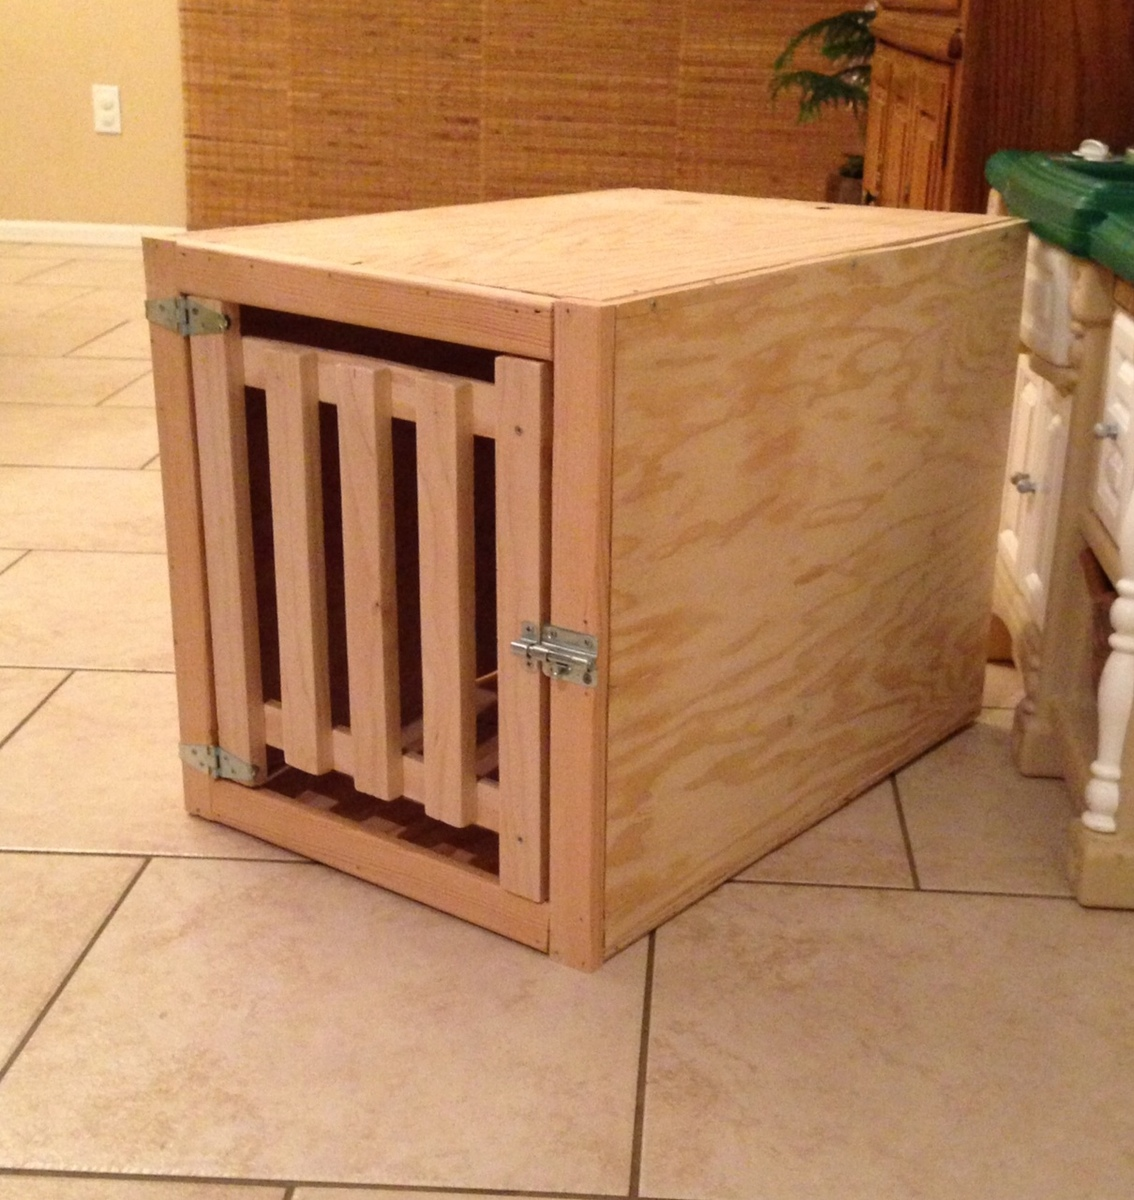 ... Dog Crate End Table also Dog Crate Bench Seat likewise DIY Wooden Dog